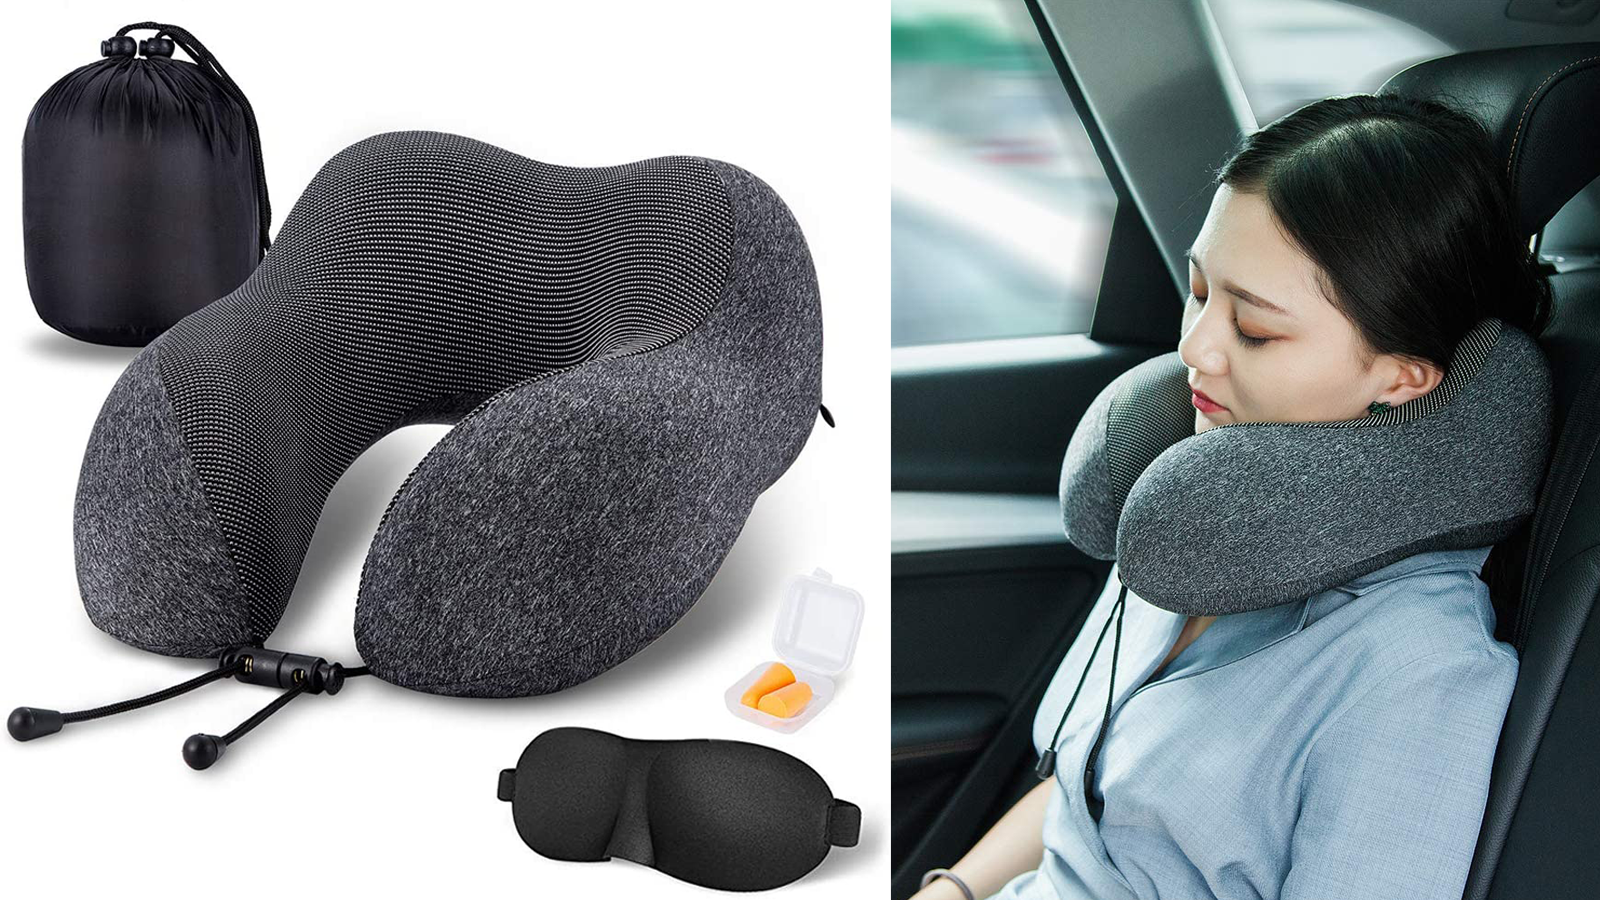 Heads Up: This Contoured Travel Pillow Supports Your Neck During Road Trip Naps